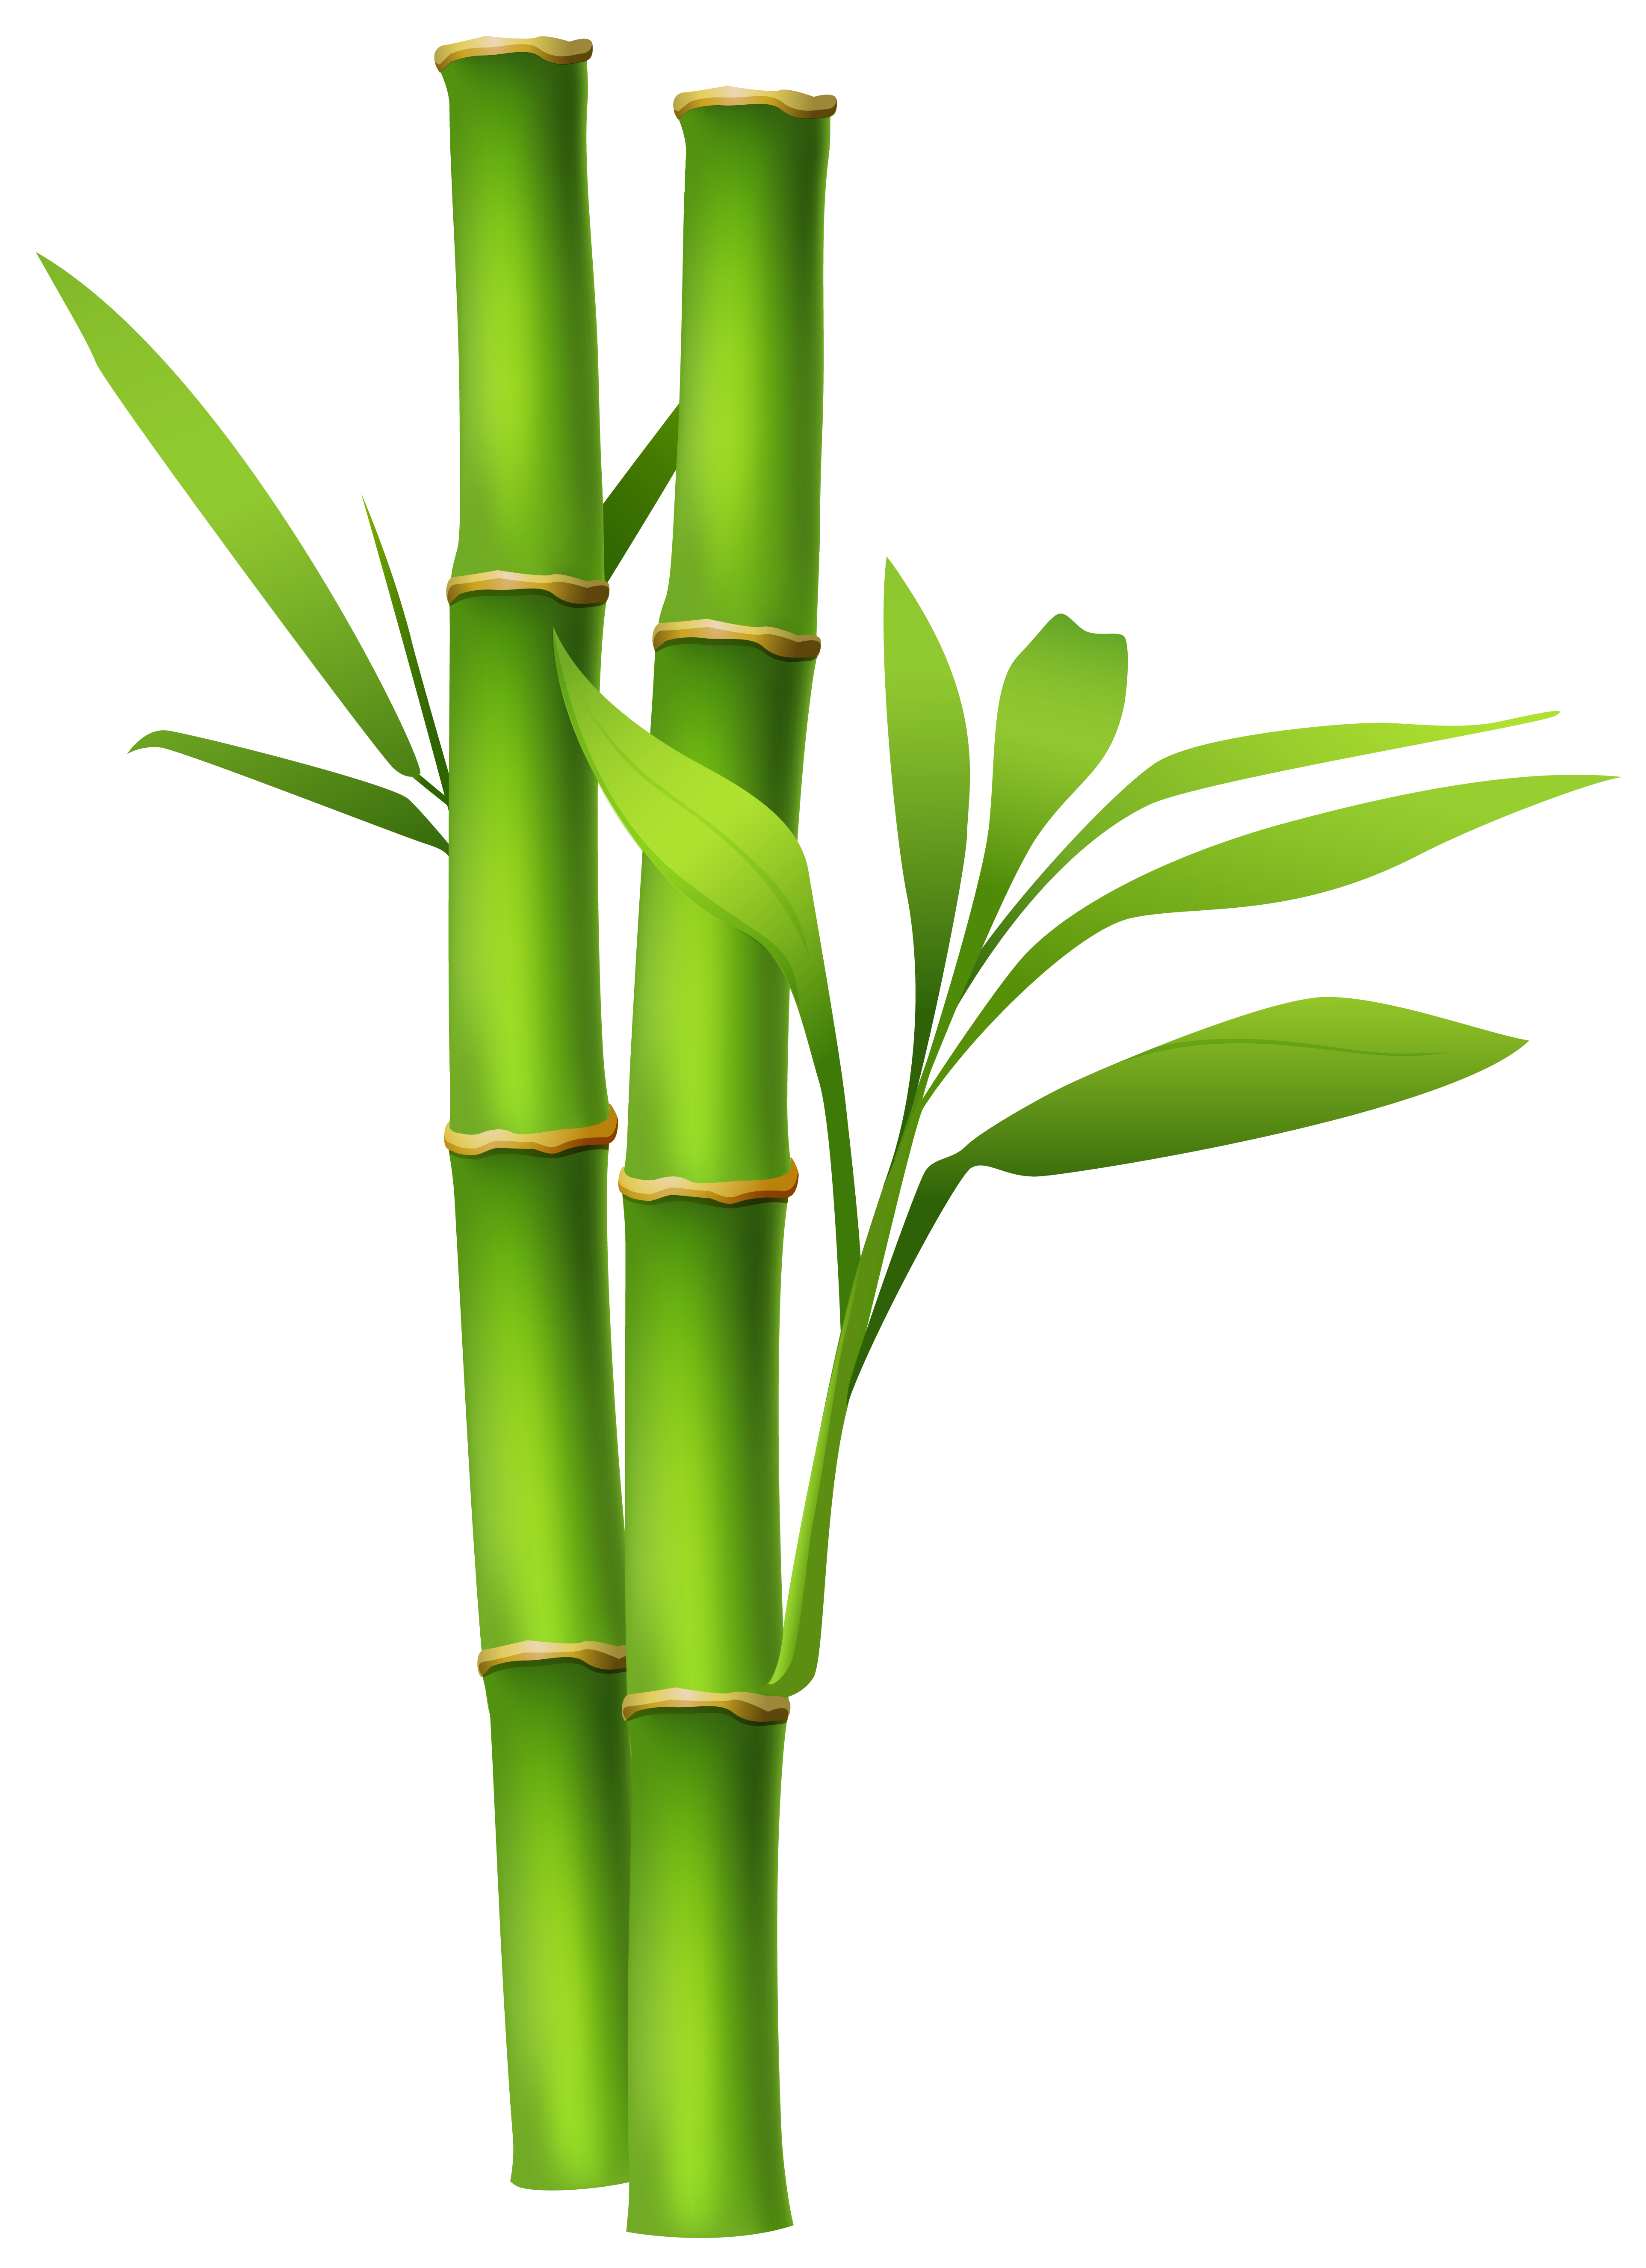 Bamboo clipart. Png image gallery yopriceville